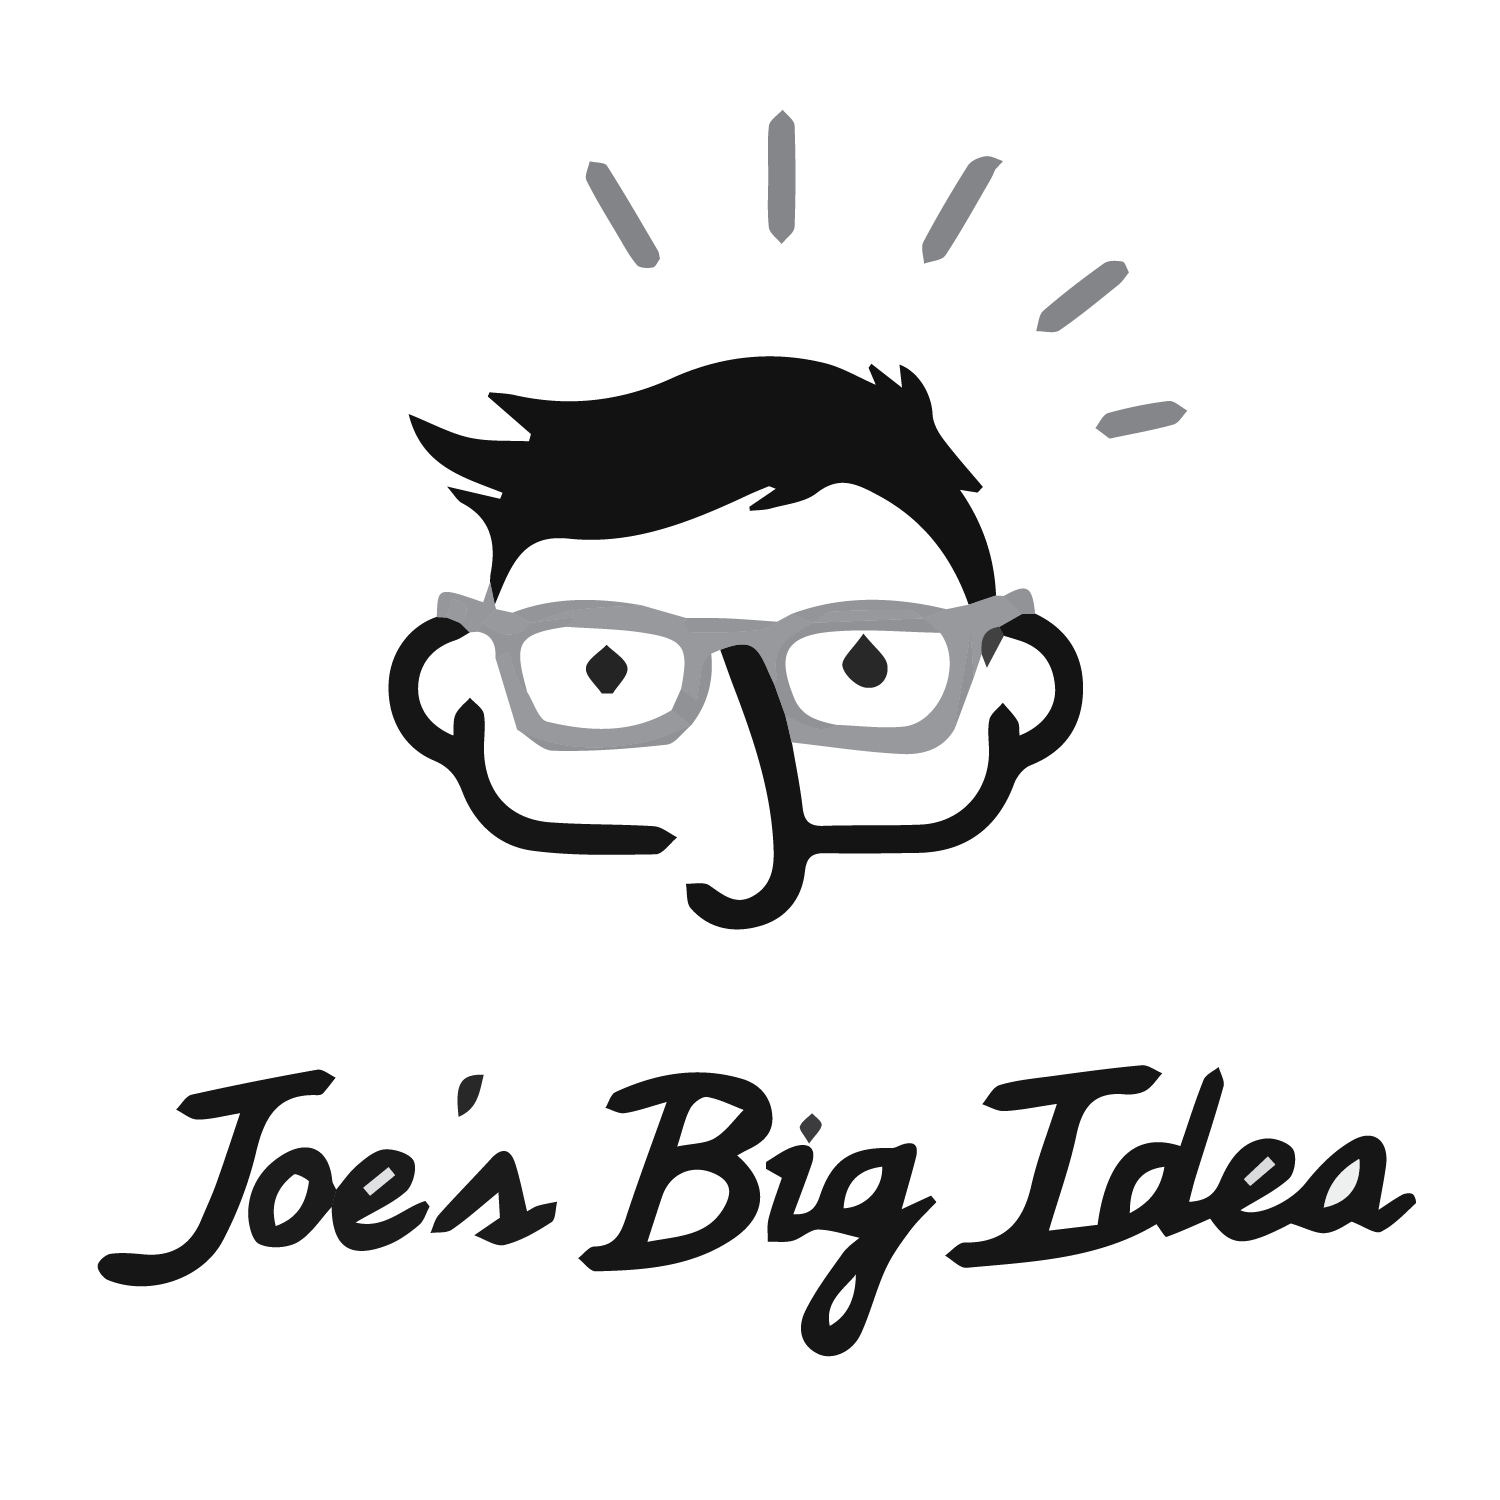 Friends of Joe's Big Idea, (pronounced foe-JOE-bee) is a community of young scientists that includes undergrads, graduate students, post docs and faculty interested in improving their science communication skills.